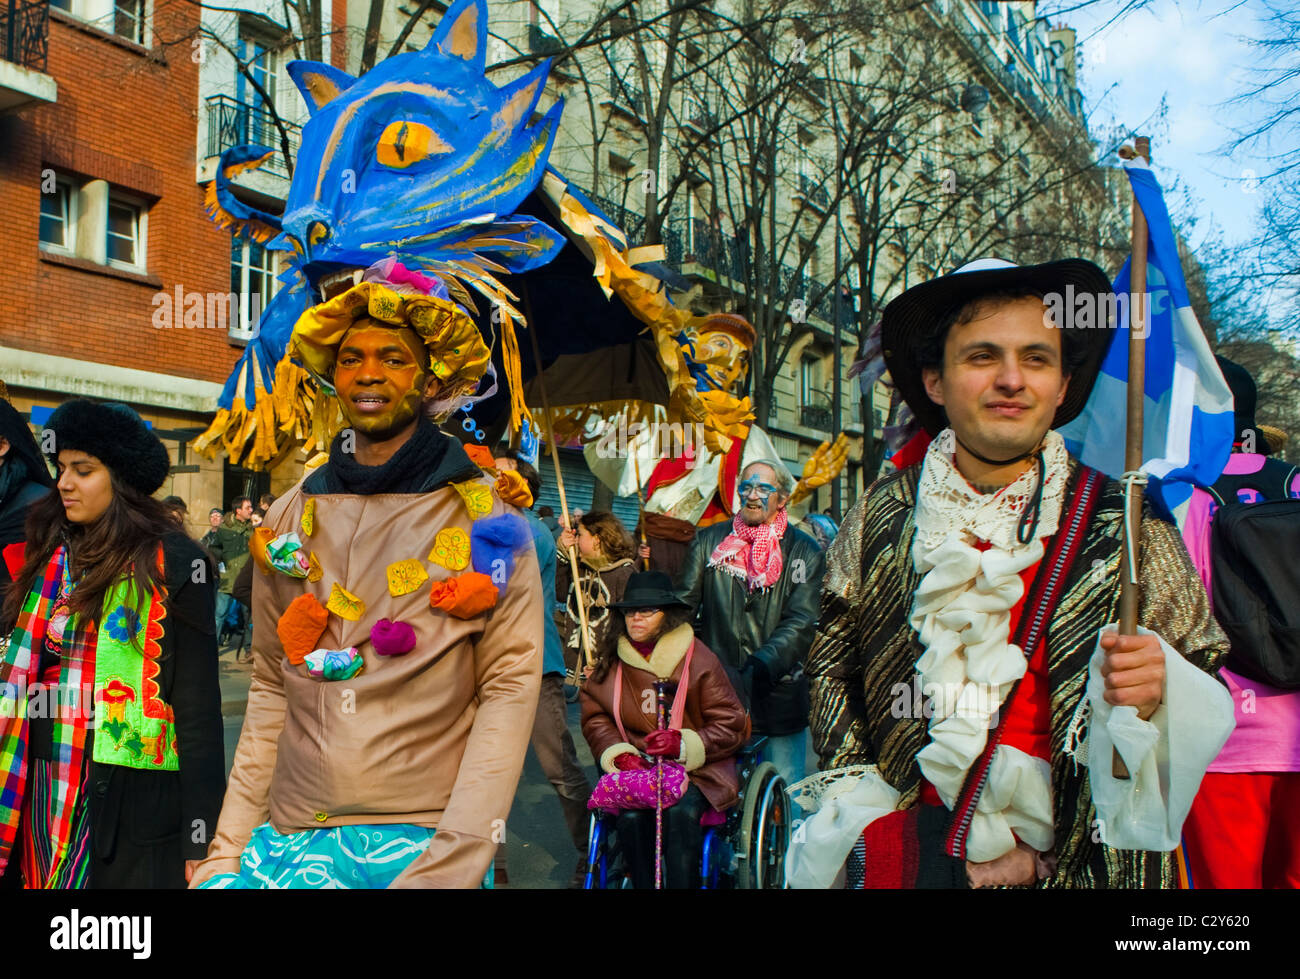 Paris France French People Celebrating Annual Carnival Parade Men